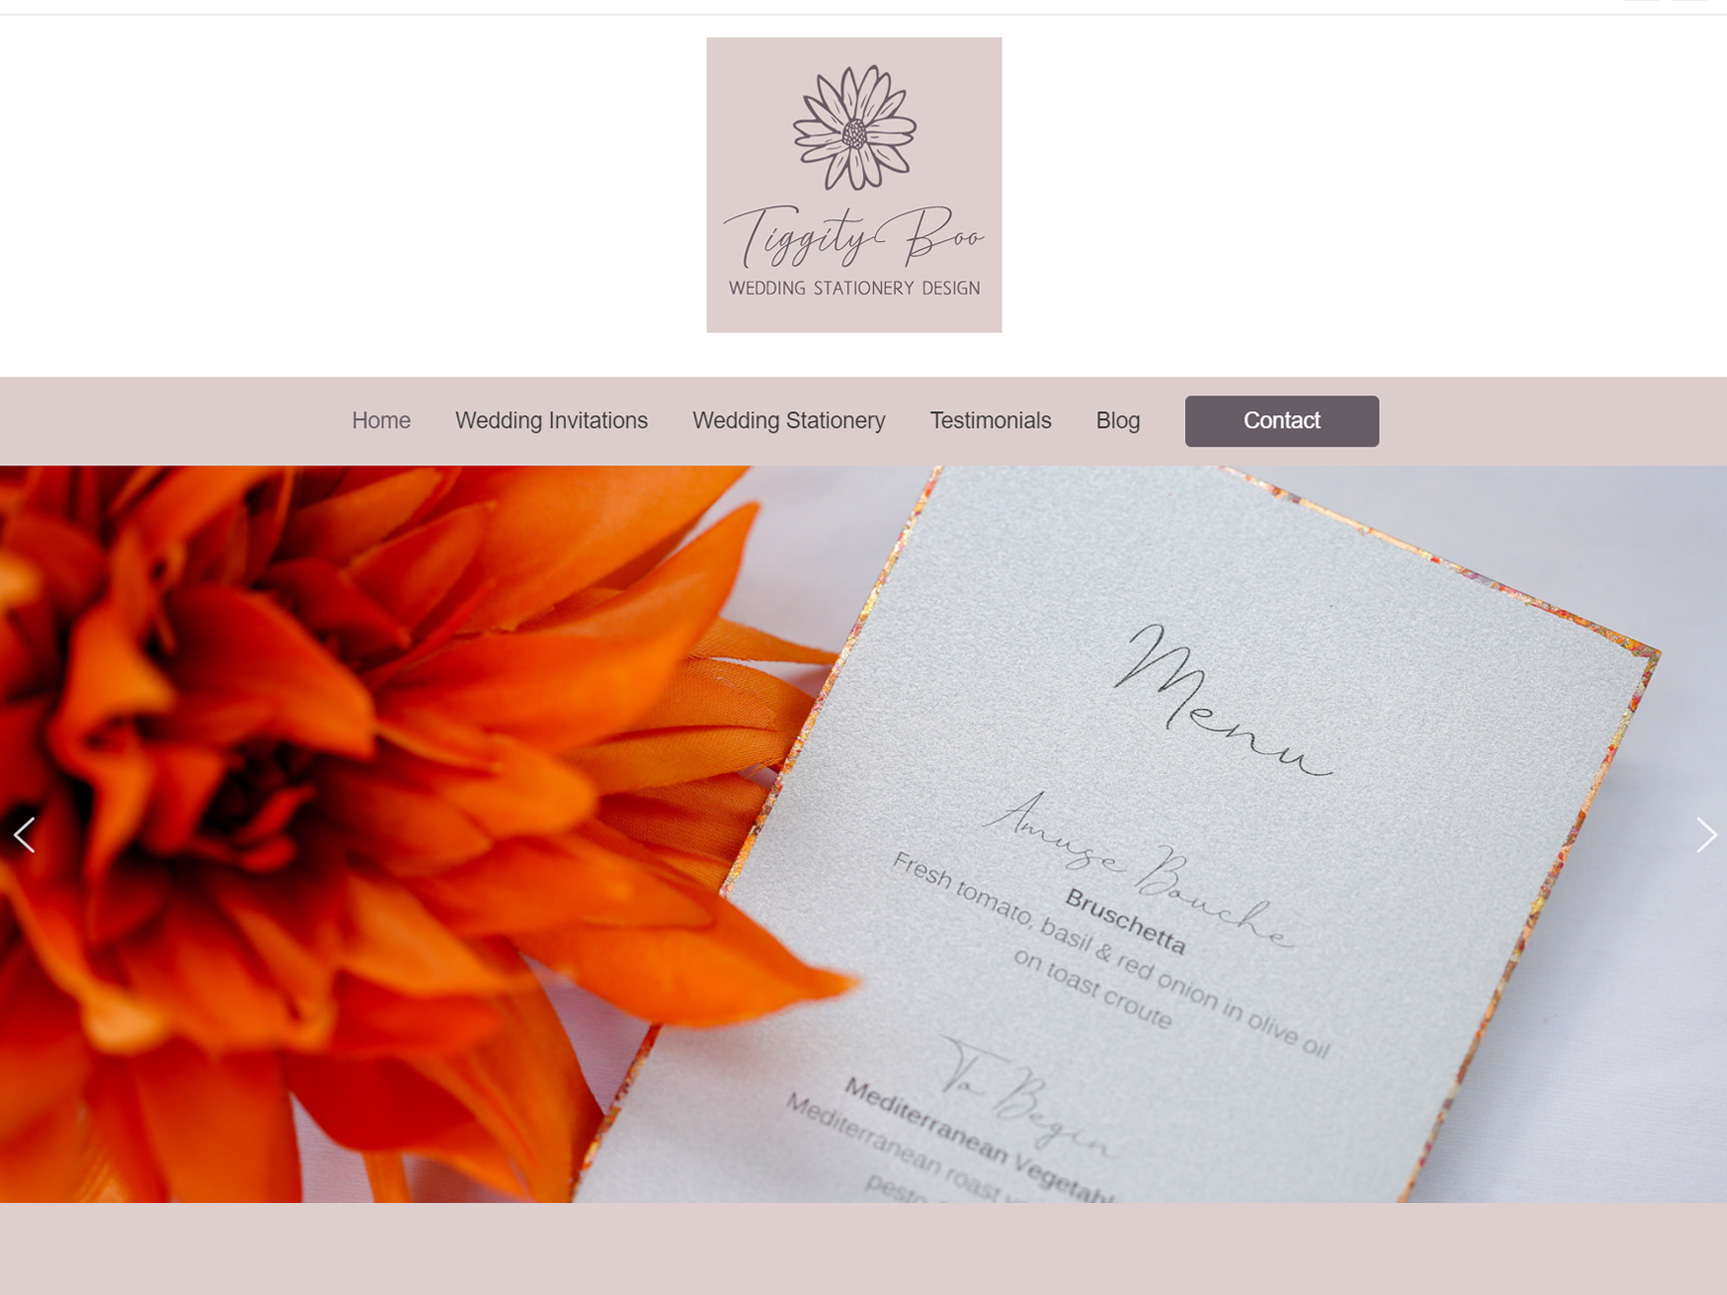 wedding-stationery-website-design